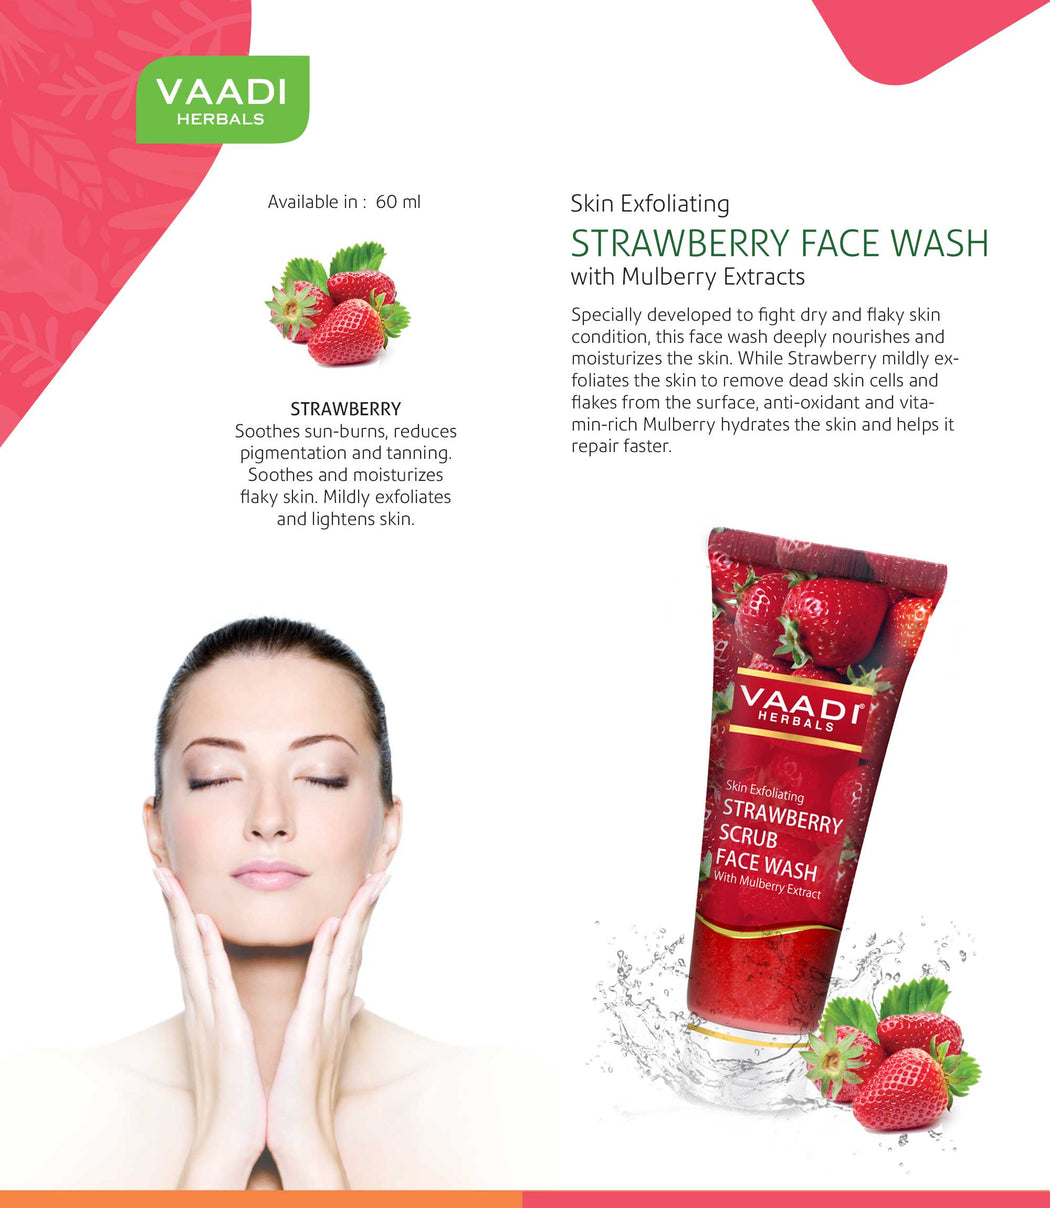 Skin Exfoliating Organic Strawberry Scrub Face Wash with Mulberry Extract- Removes Dead Skin - Deeply Nourishes Skin ( 4 x 60ml/ 21.1 fl oz)